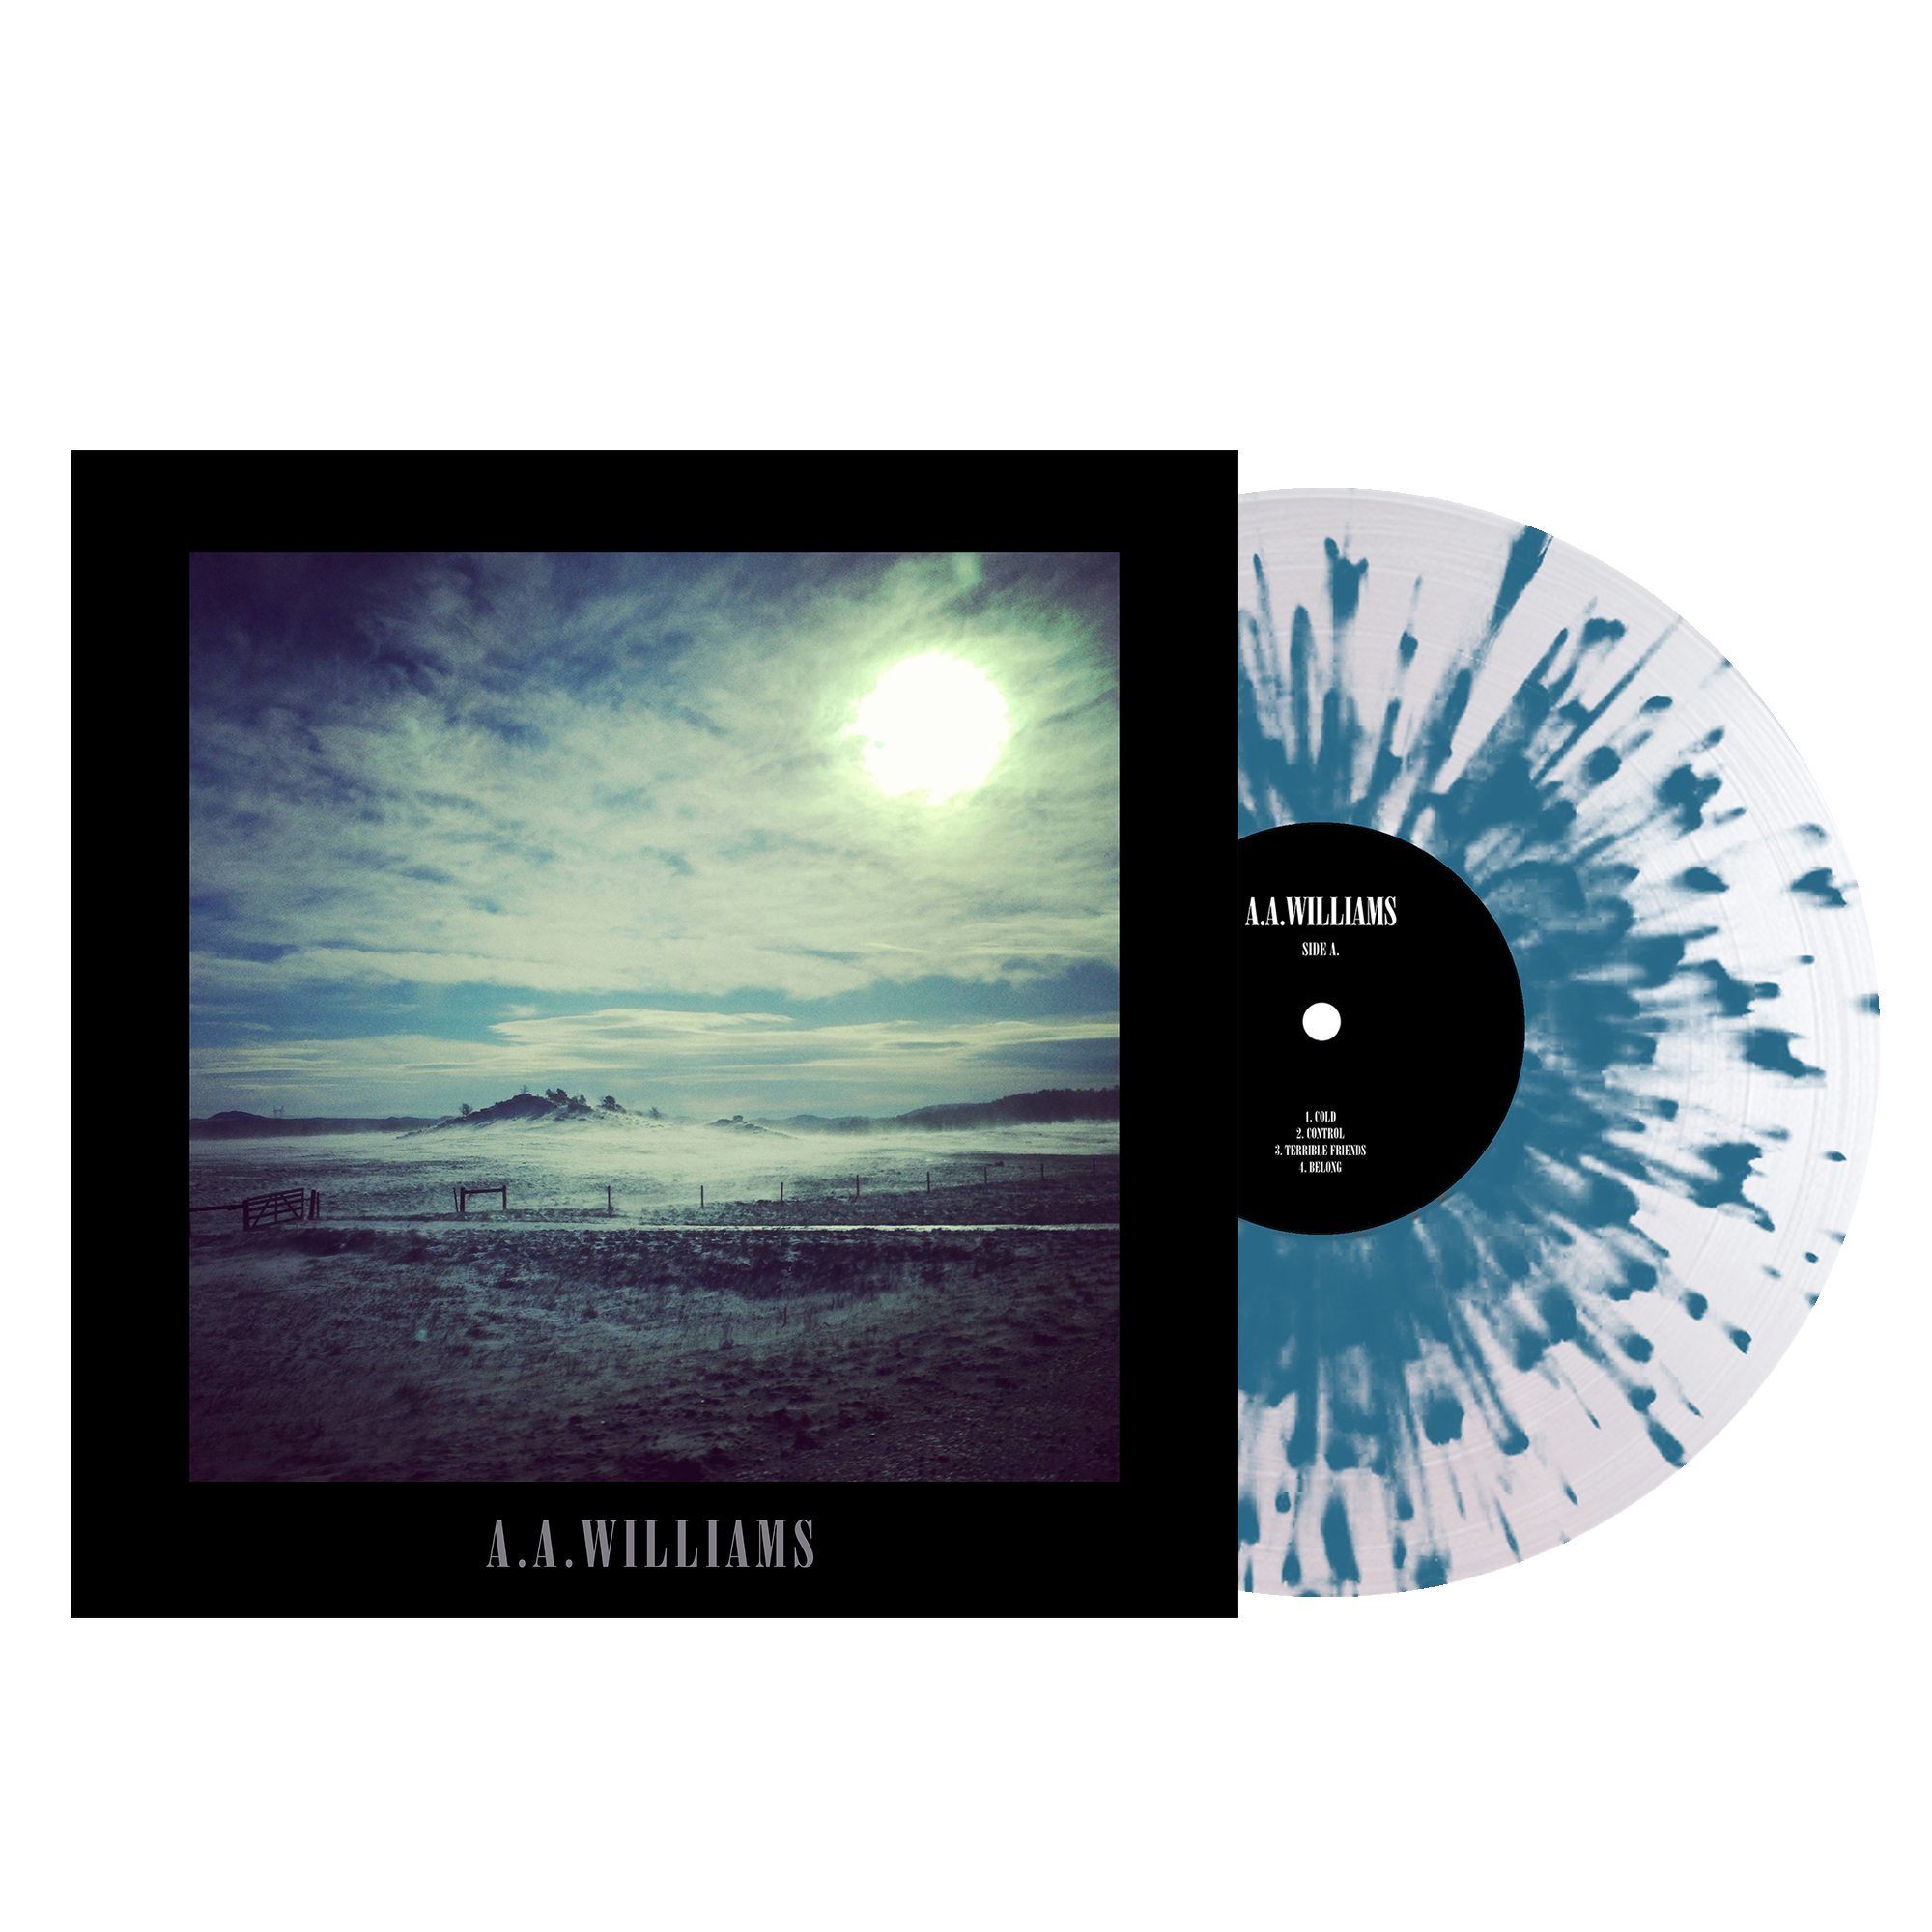 A.A.Williams - A.A.Williams (Reissue) PREORDER